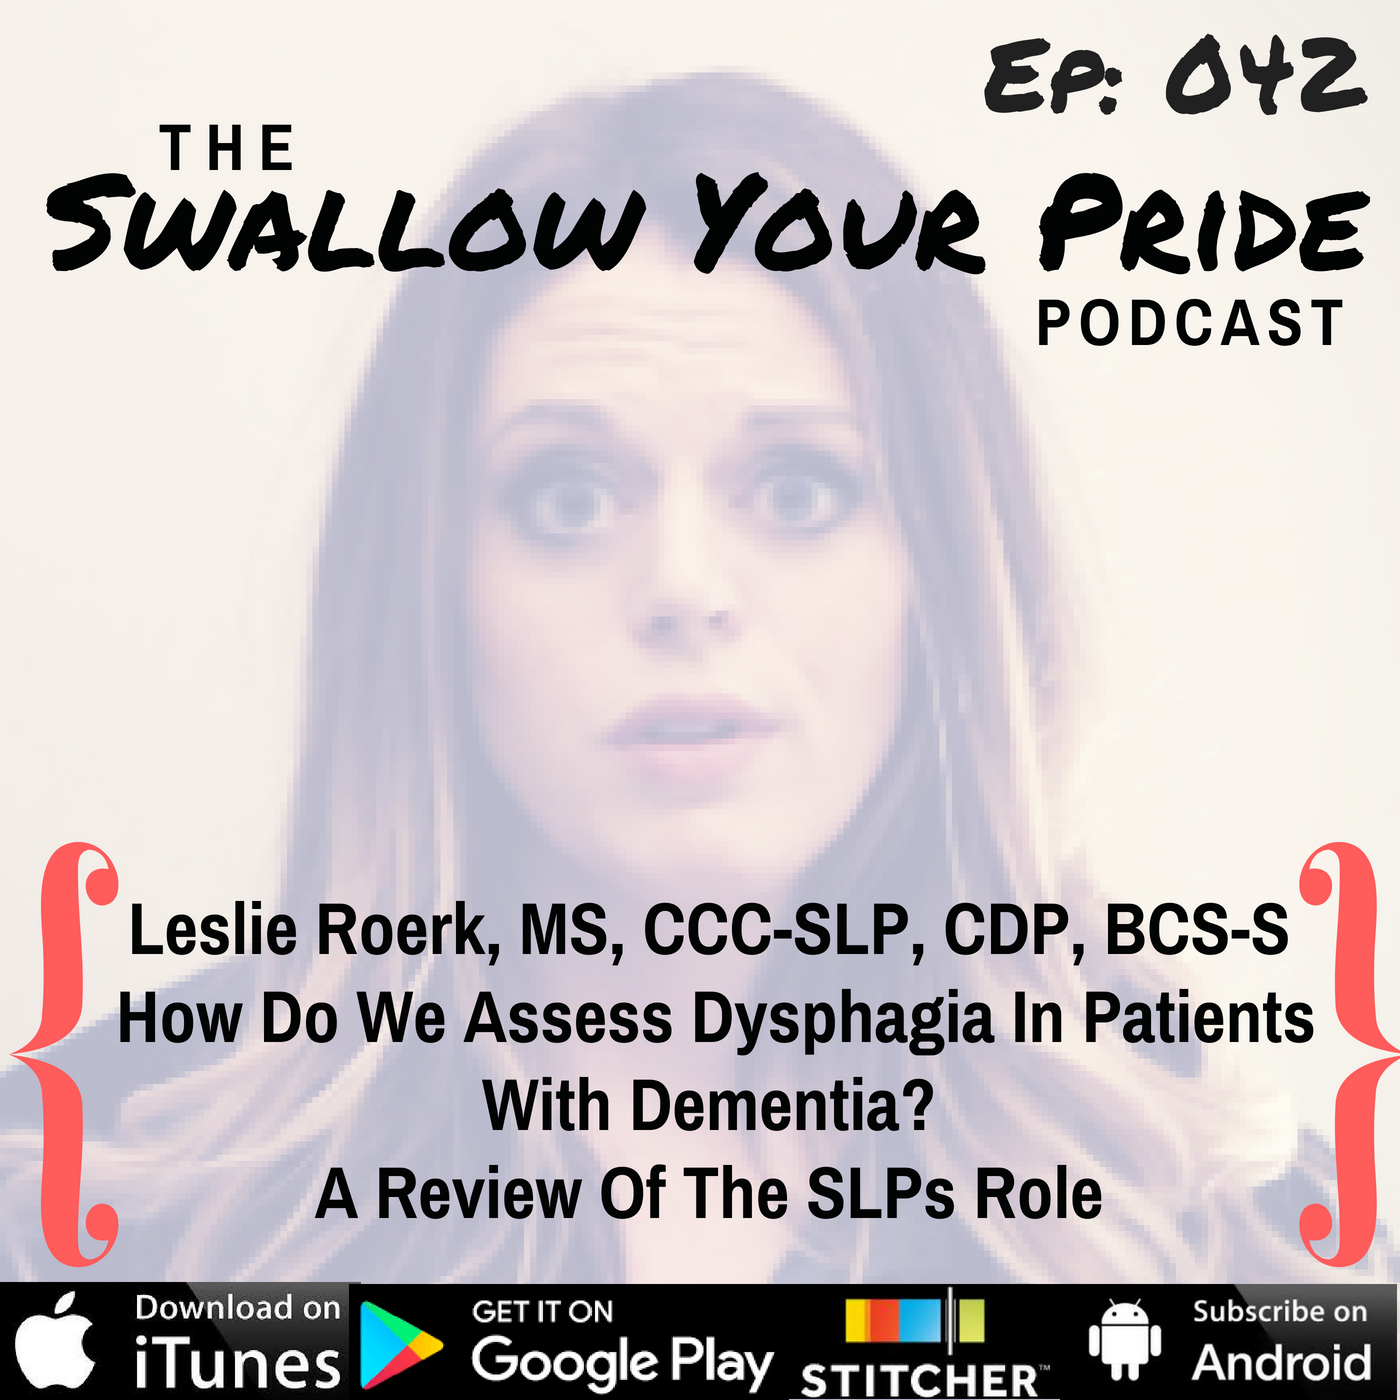 042 –  Leslie R. Roerk, M.S., CCC-SLP, CDP, BCS-S – How Do We Assess Dysphagia In Patients With Dementia? A Review Of The SLPs Role